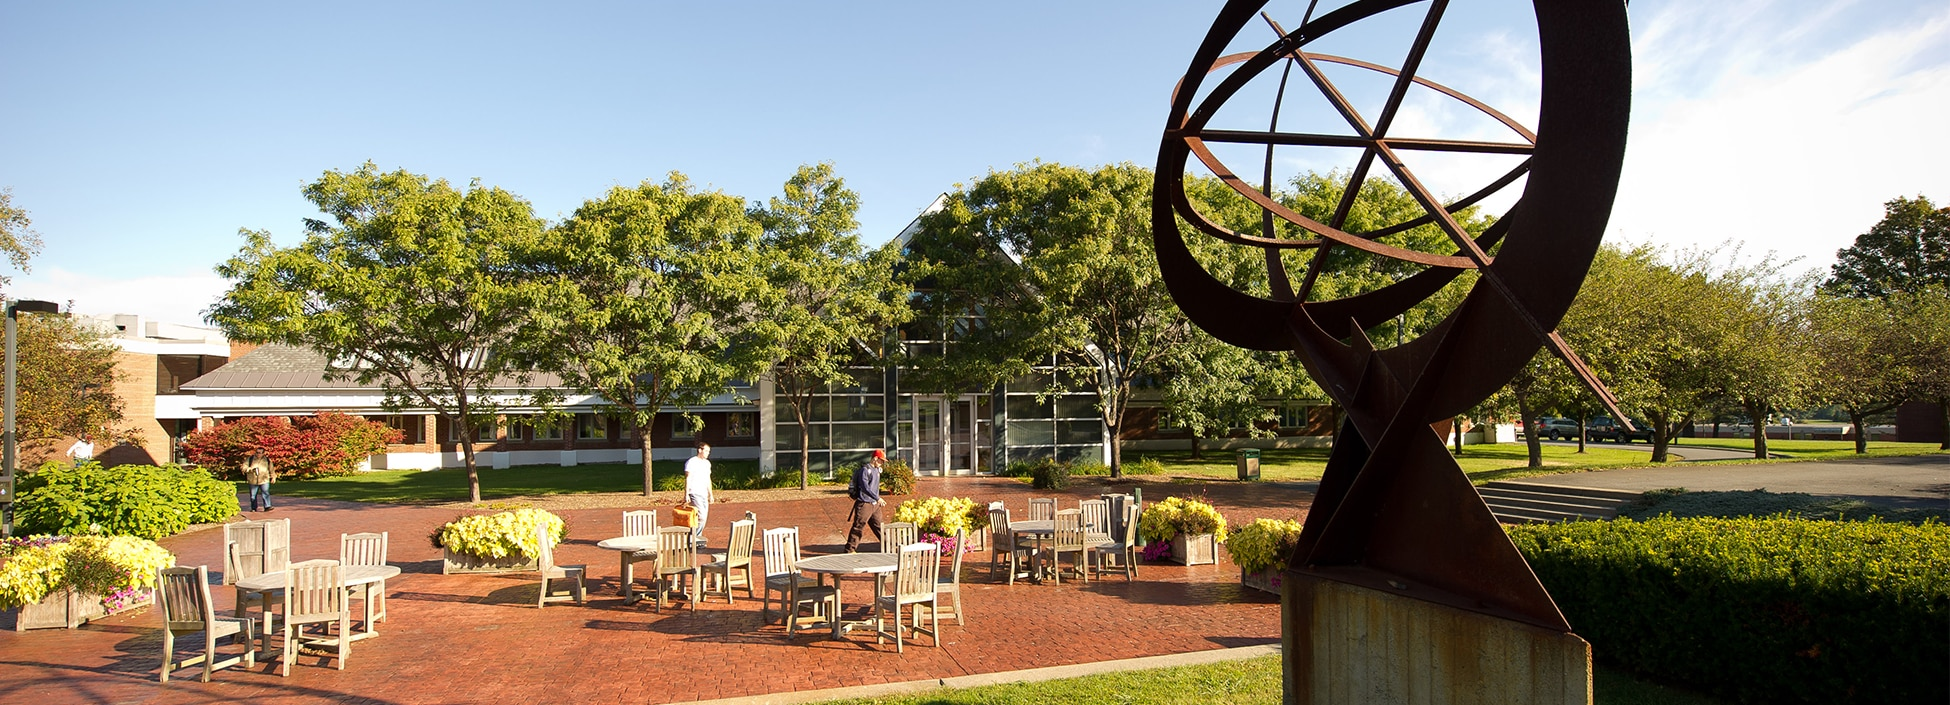 Randolph Center campus, plaza, patio, sculpture, sun, tables, relaxing